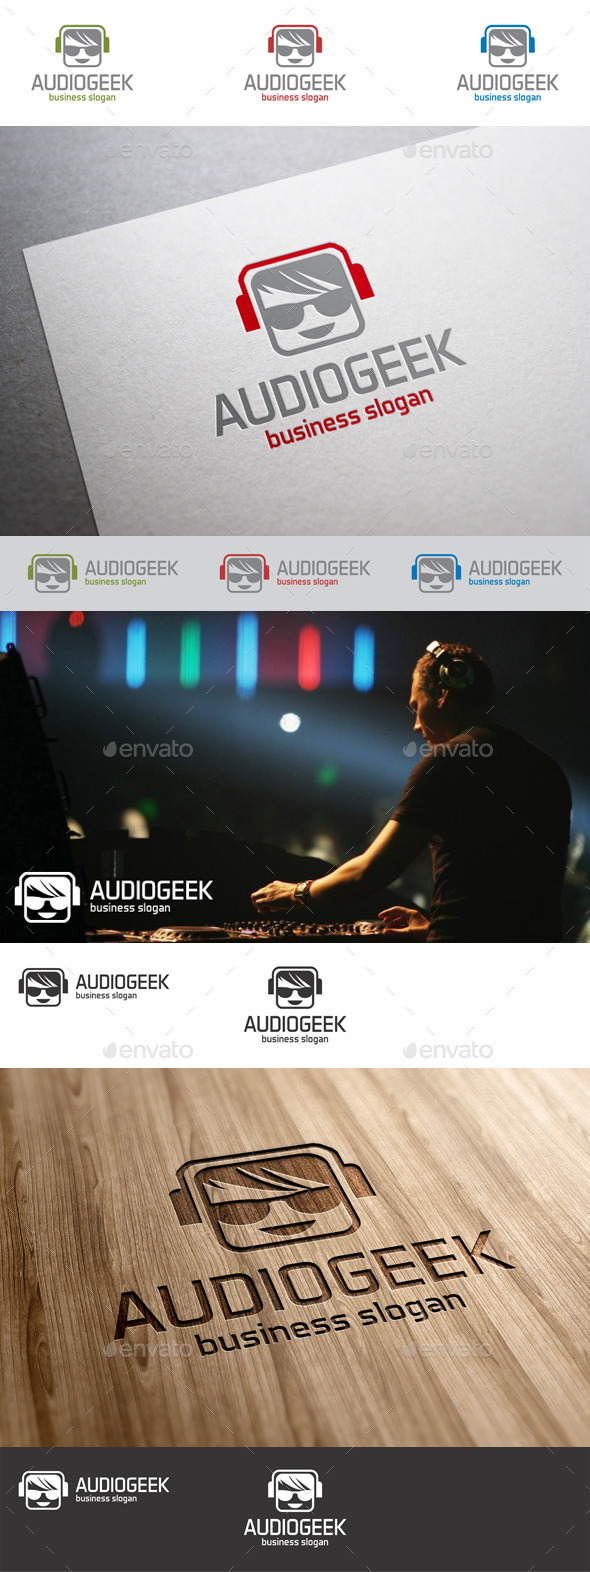 GraphicRiver Audio Geek Square Avatar Logo 8808159